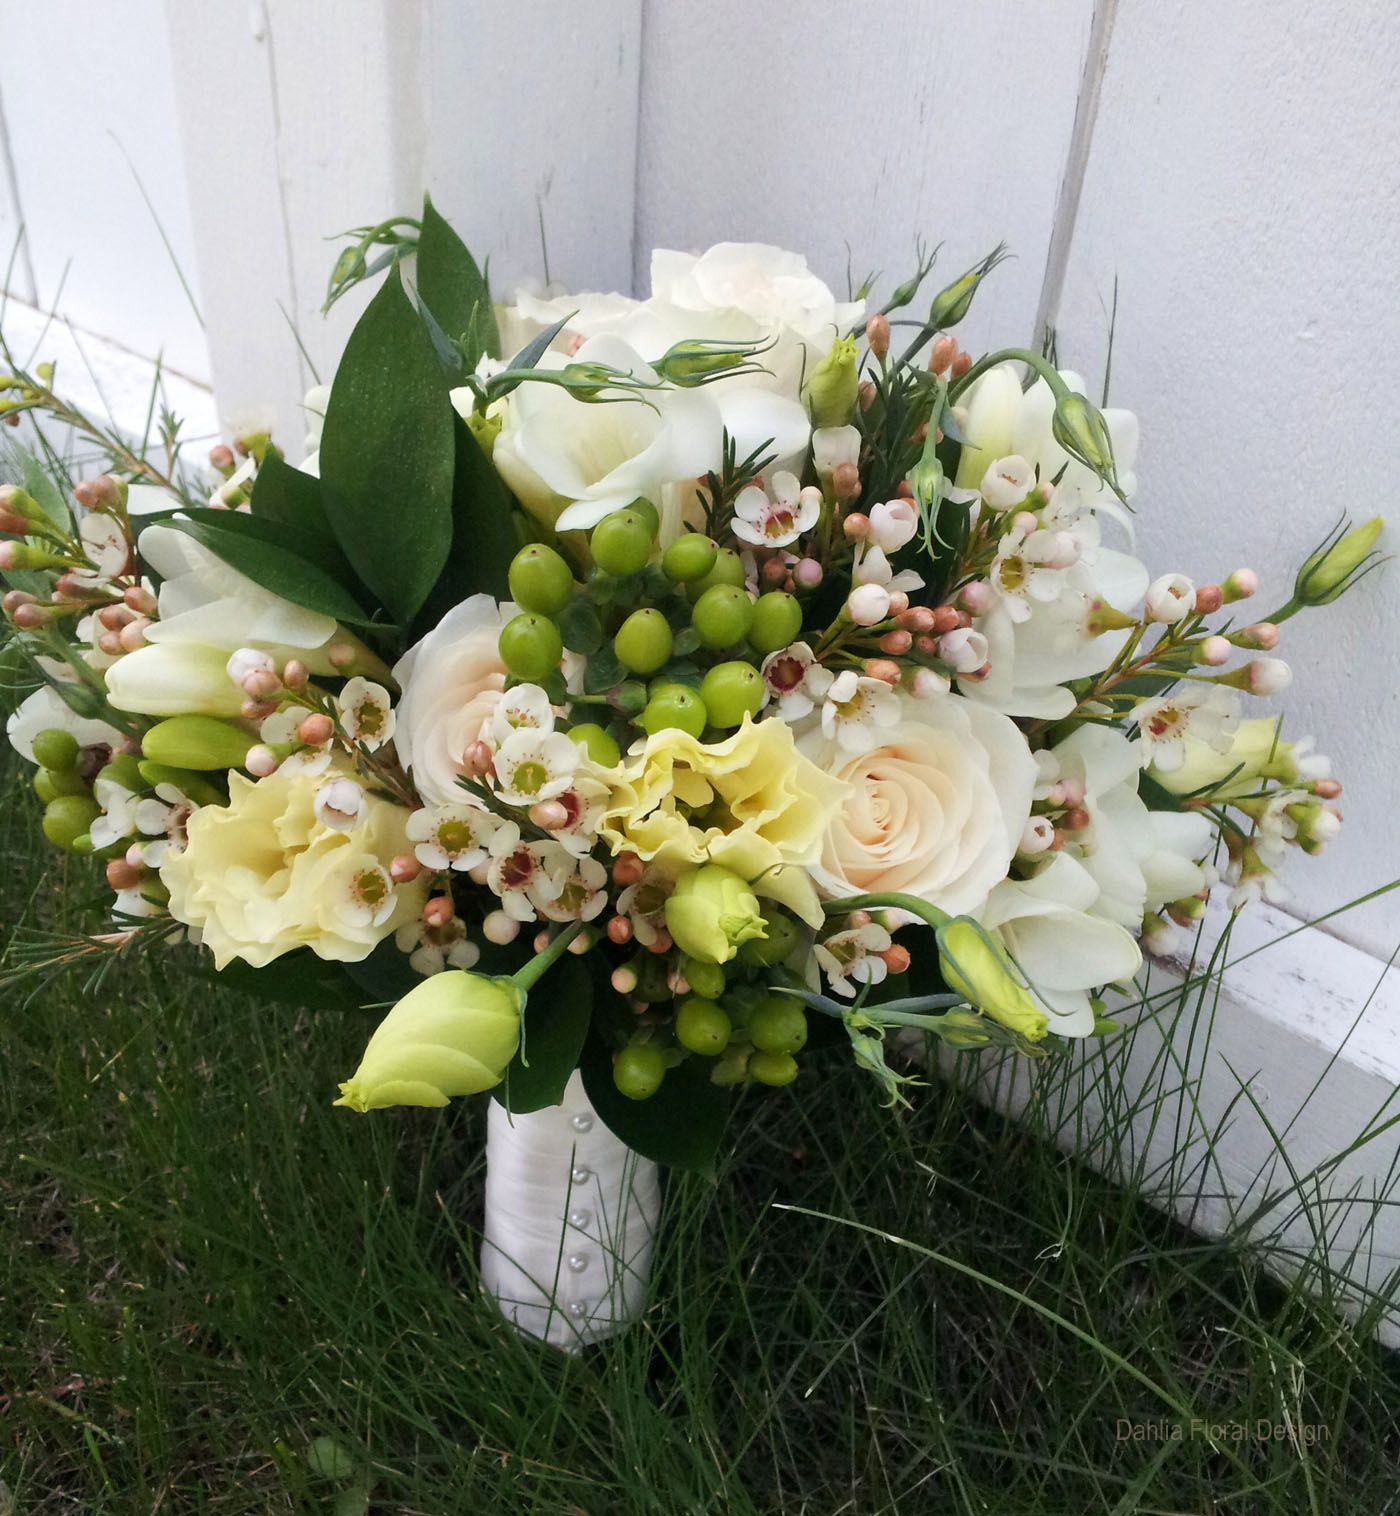 White Wax Flower Delicate White And Green Bridal Bouquet Of